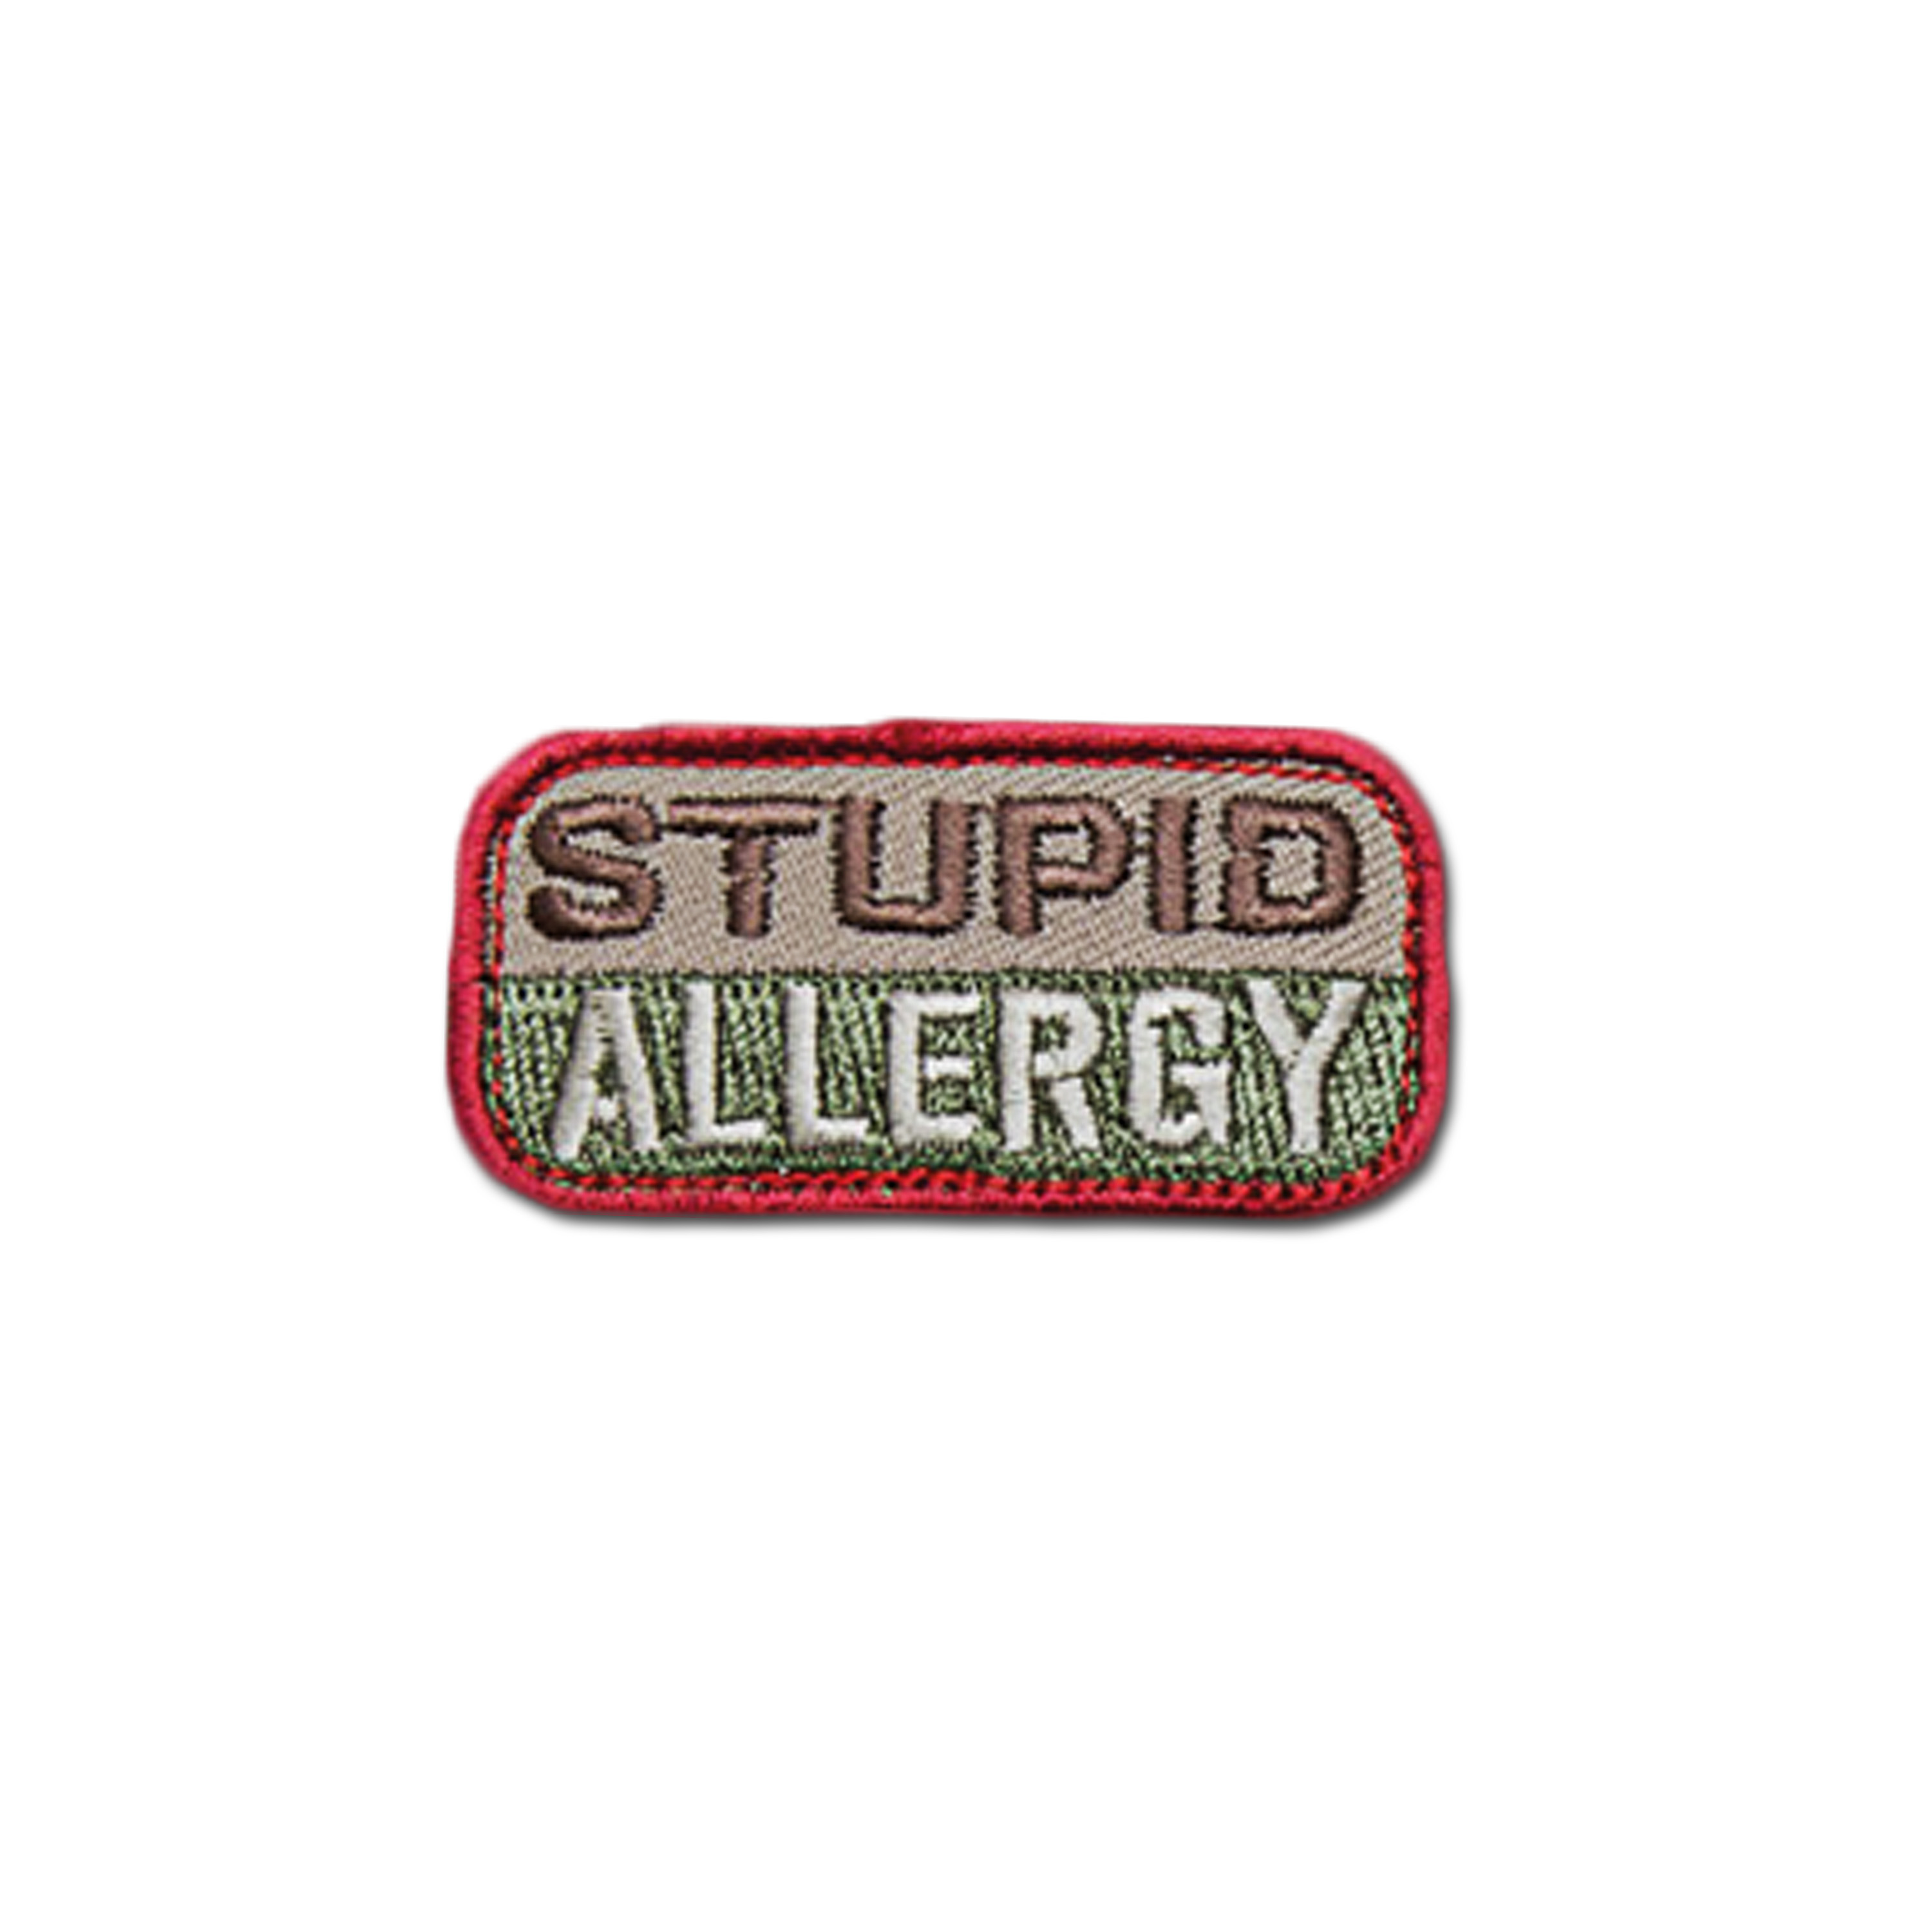 MilSpecMonkey Patch Stupid Allergie arid